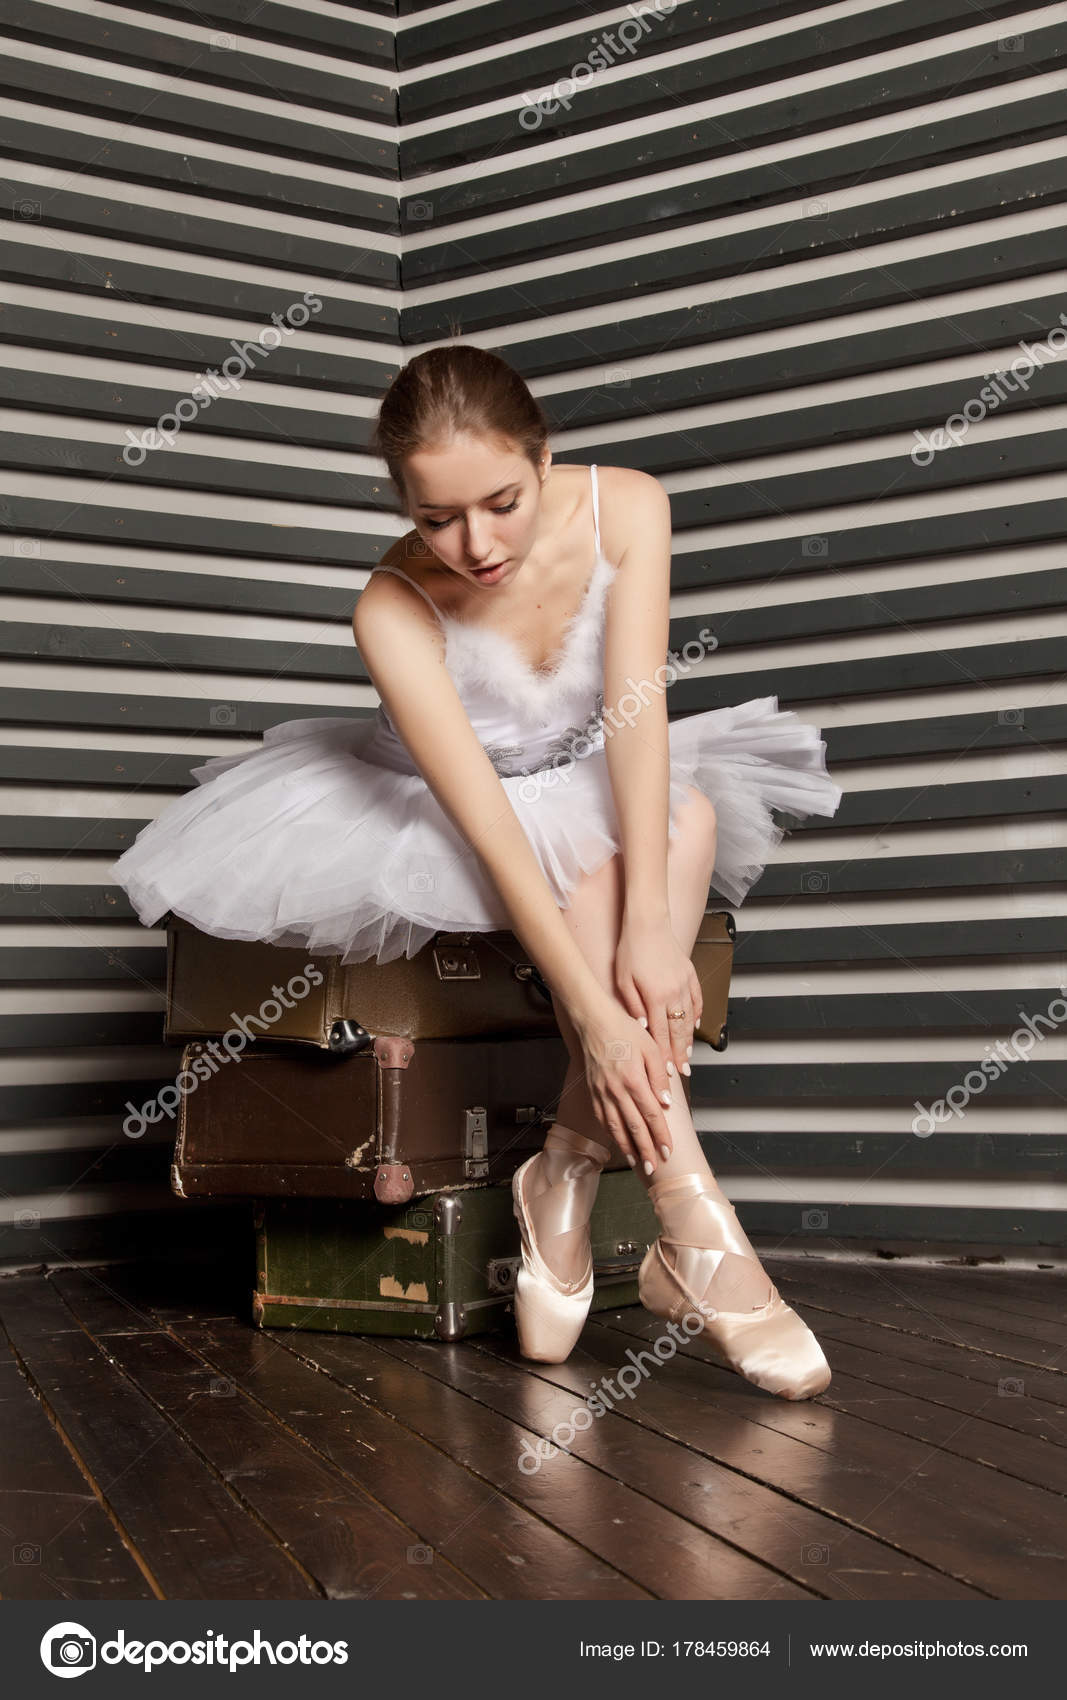 84aa4d58765c She Lovely Young Ballerina White Classical Dress Sitting Stack Retro — Stock  Photo